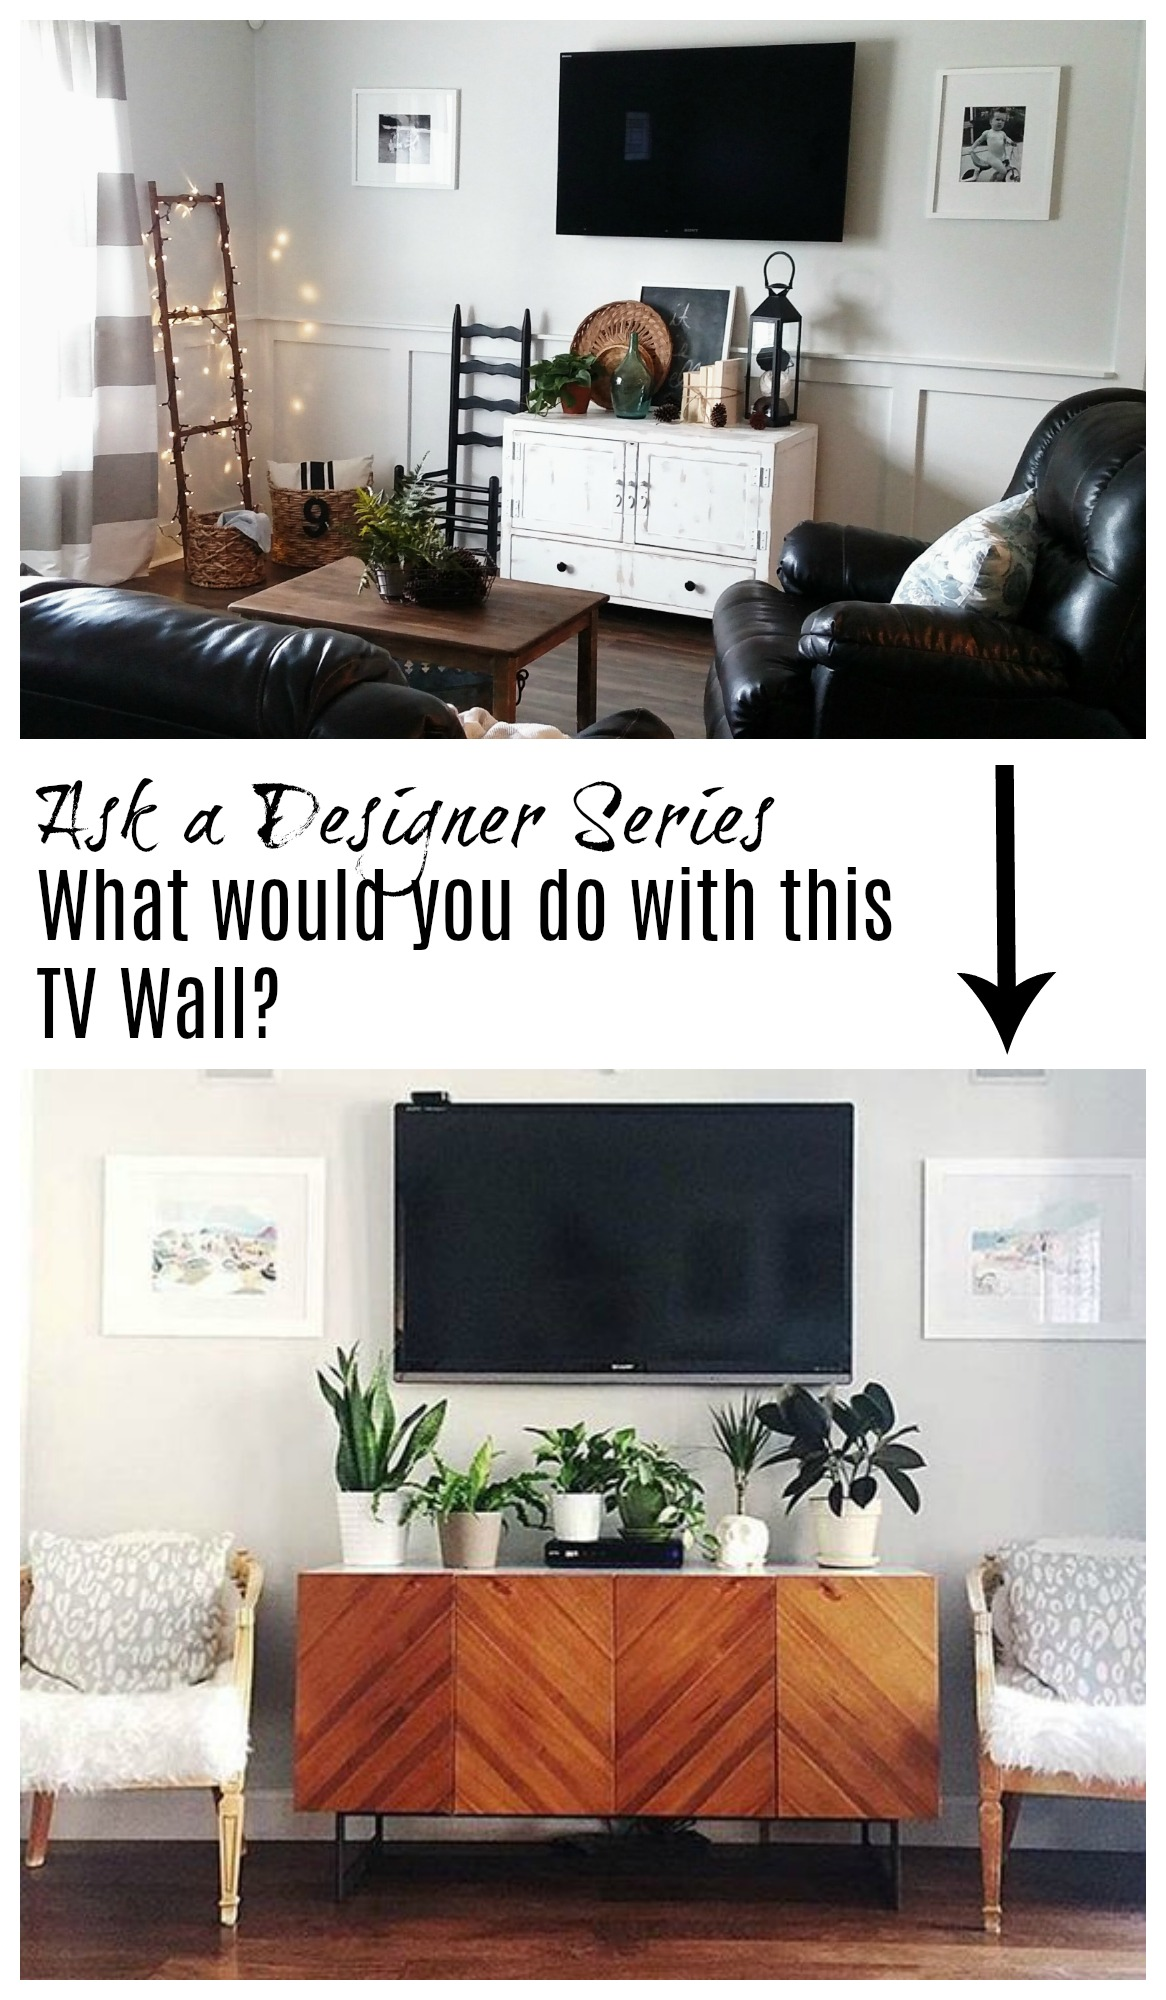 TV Wall Ideas- What would you do with this TV wall?